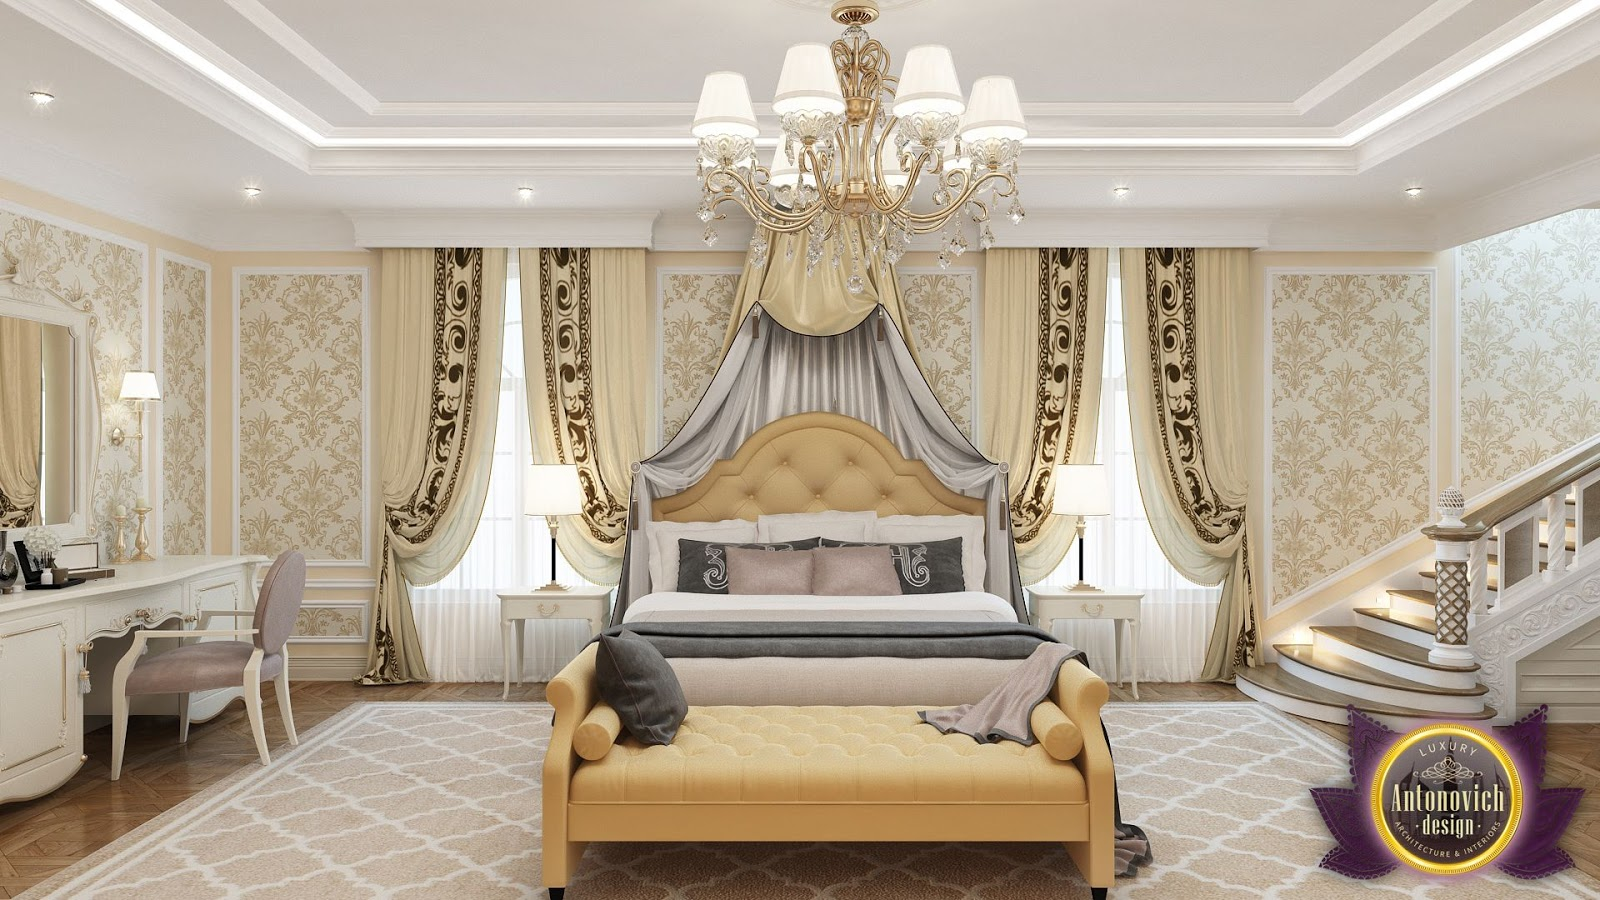 luxury antonovich design uae master bedroom design by katrina